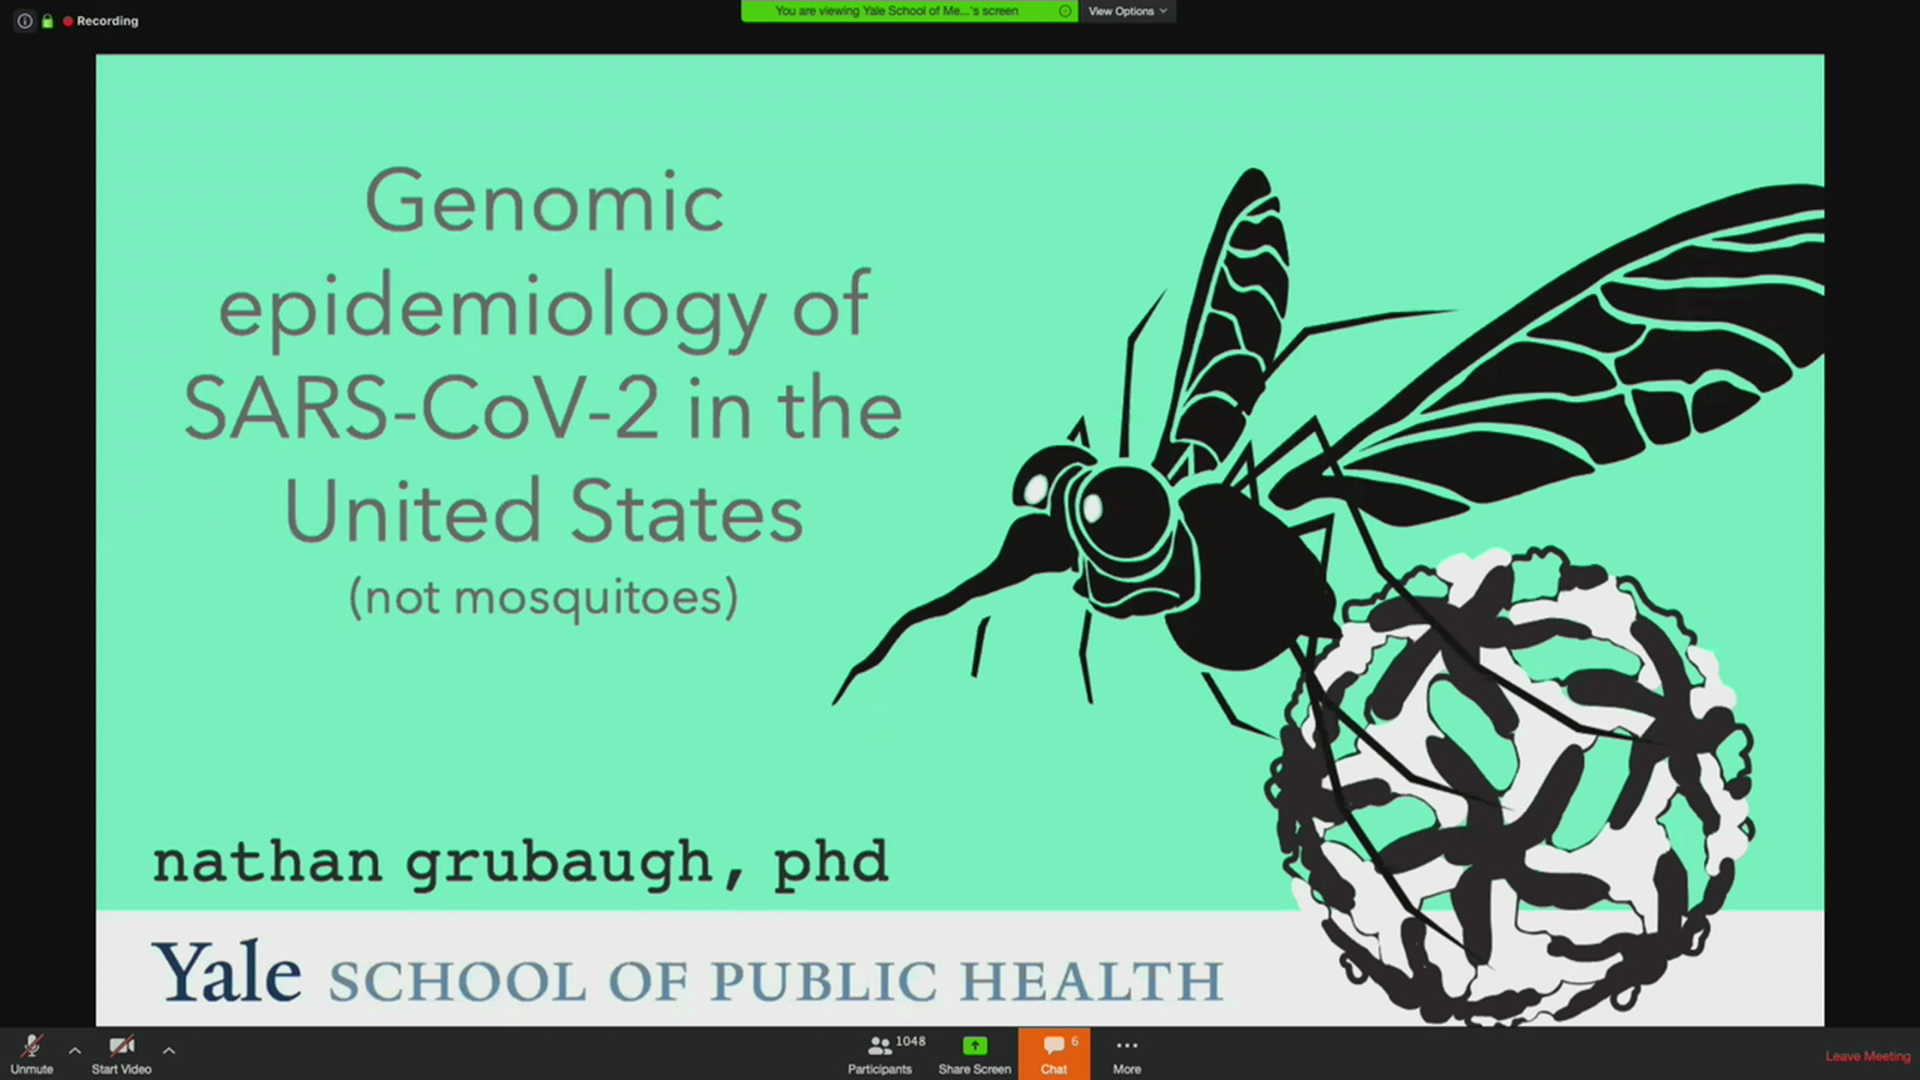 Genomic Epidemiology of SARS-COV-2 in the United States